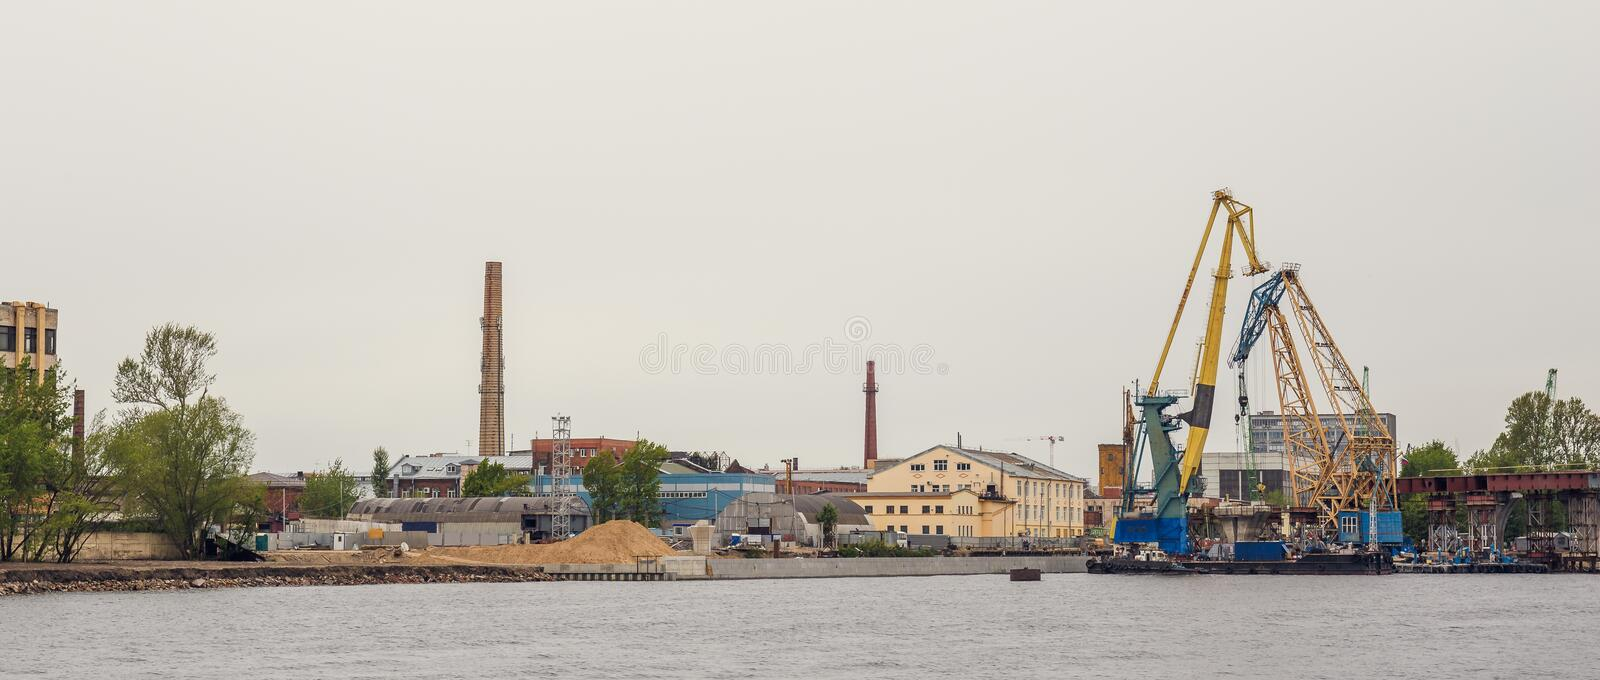 Industrial landscape with port and cargo cranes on river, shipping, trade and international logistic stock images